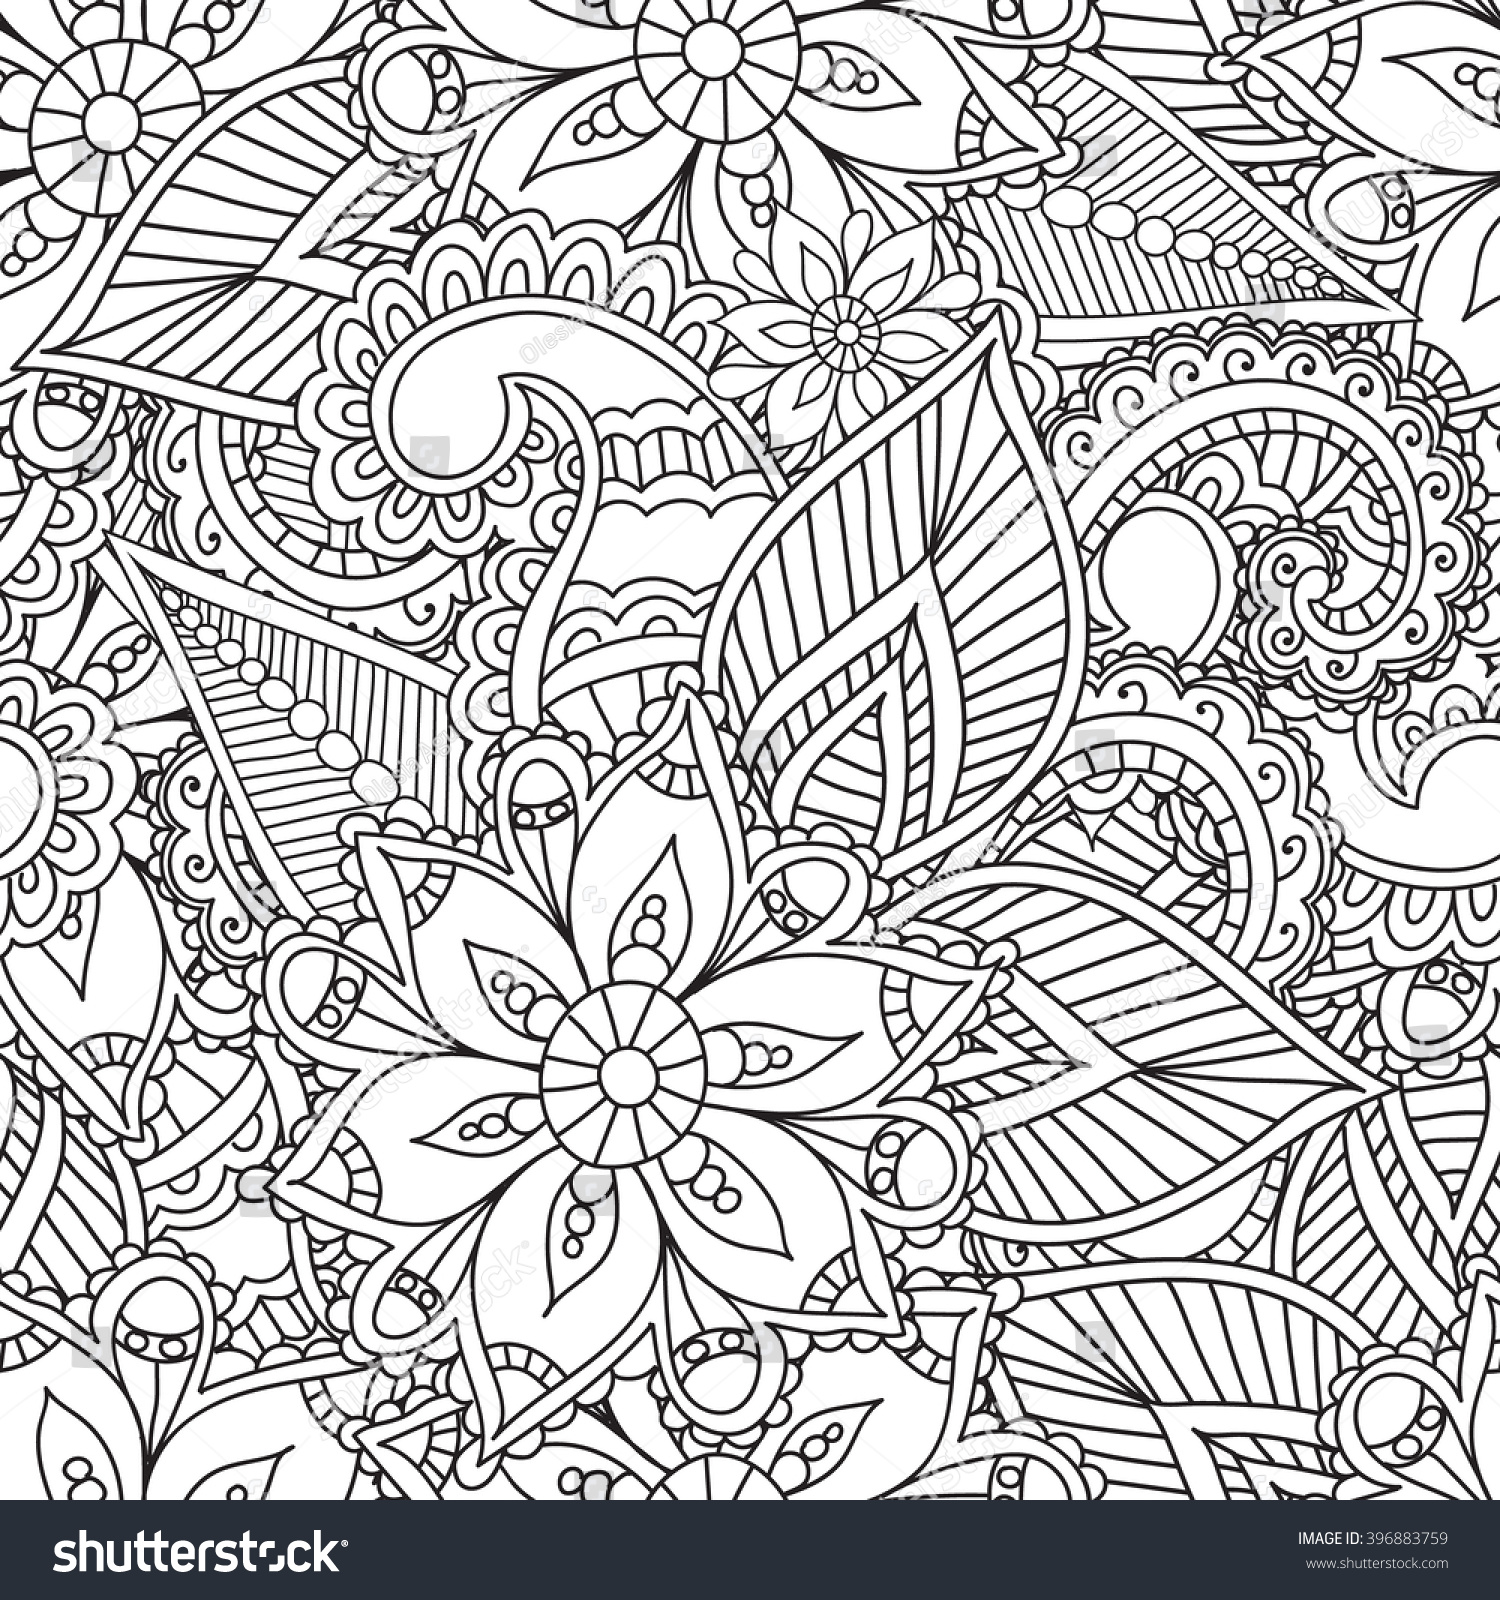 Coloring Pages Adultsseamless Patternhenna Mehendi Doodles